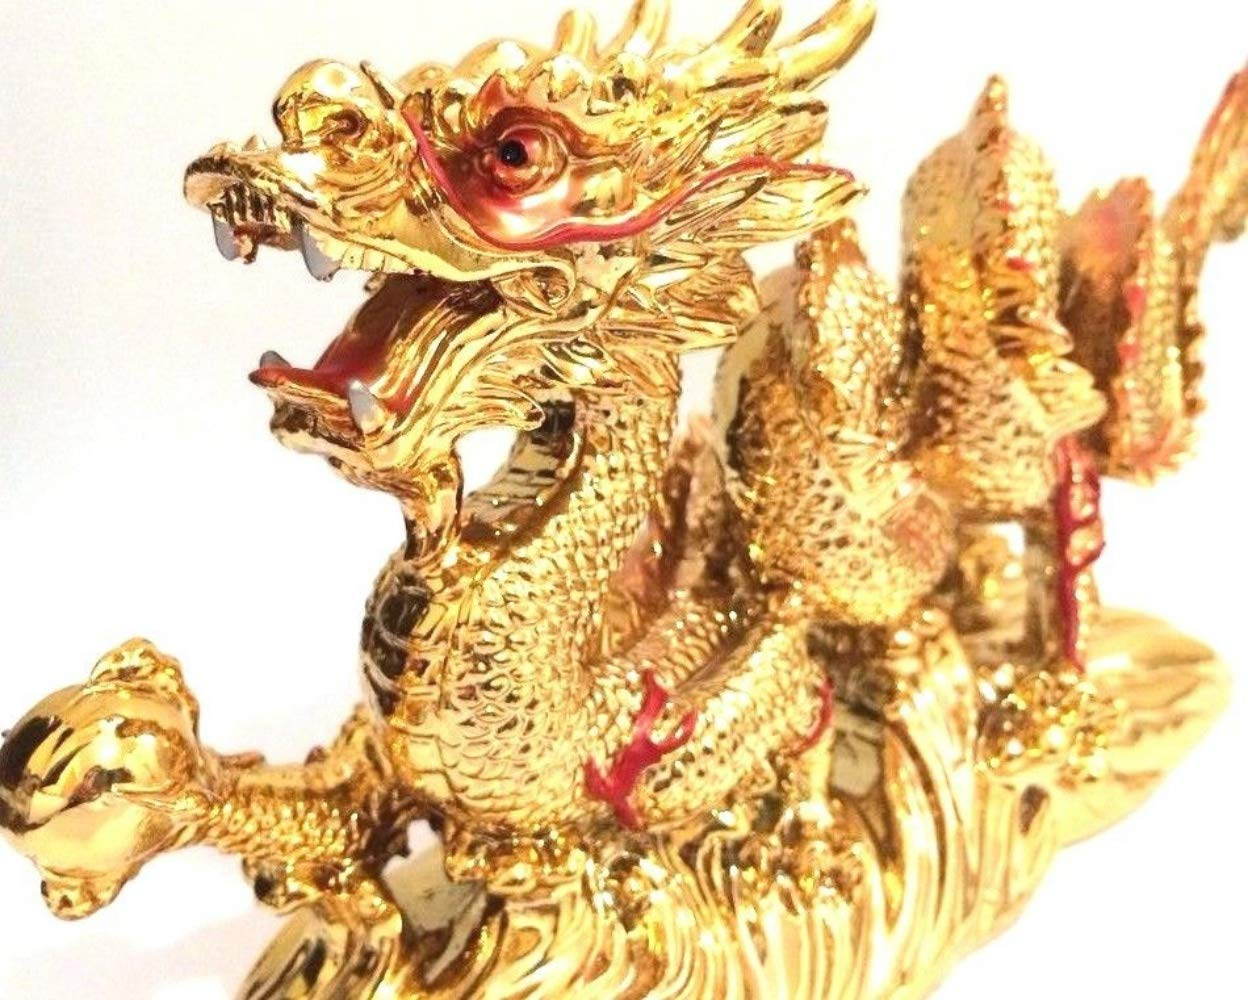 PNPGlobal Dagon Gold Chinese Luck Statue Figurine Feng Shui for Luck